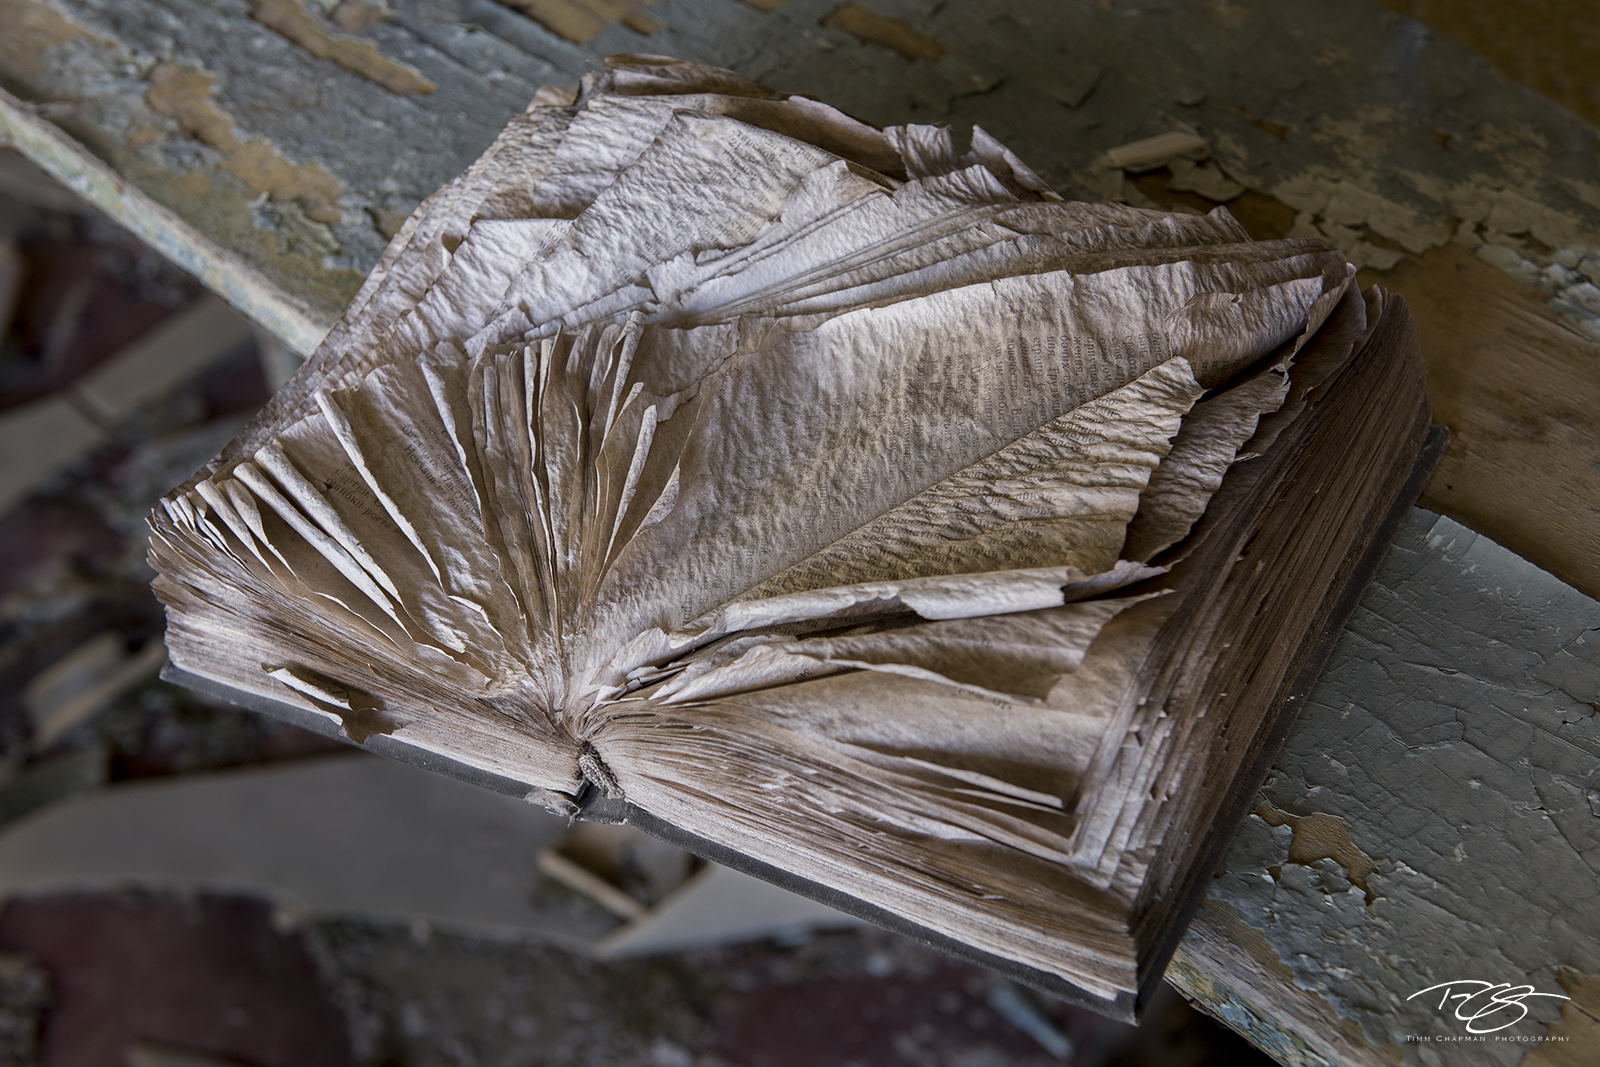 chernobyl, chornobyl, pripyat, exclusion zone, abandoned, forgotten, wasteland, radioactive, decay, peeling paint, middle school, school, library, book, worn, torn pages, weathered, well read, photo